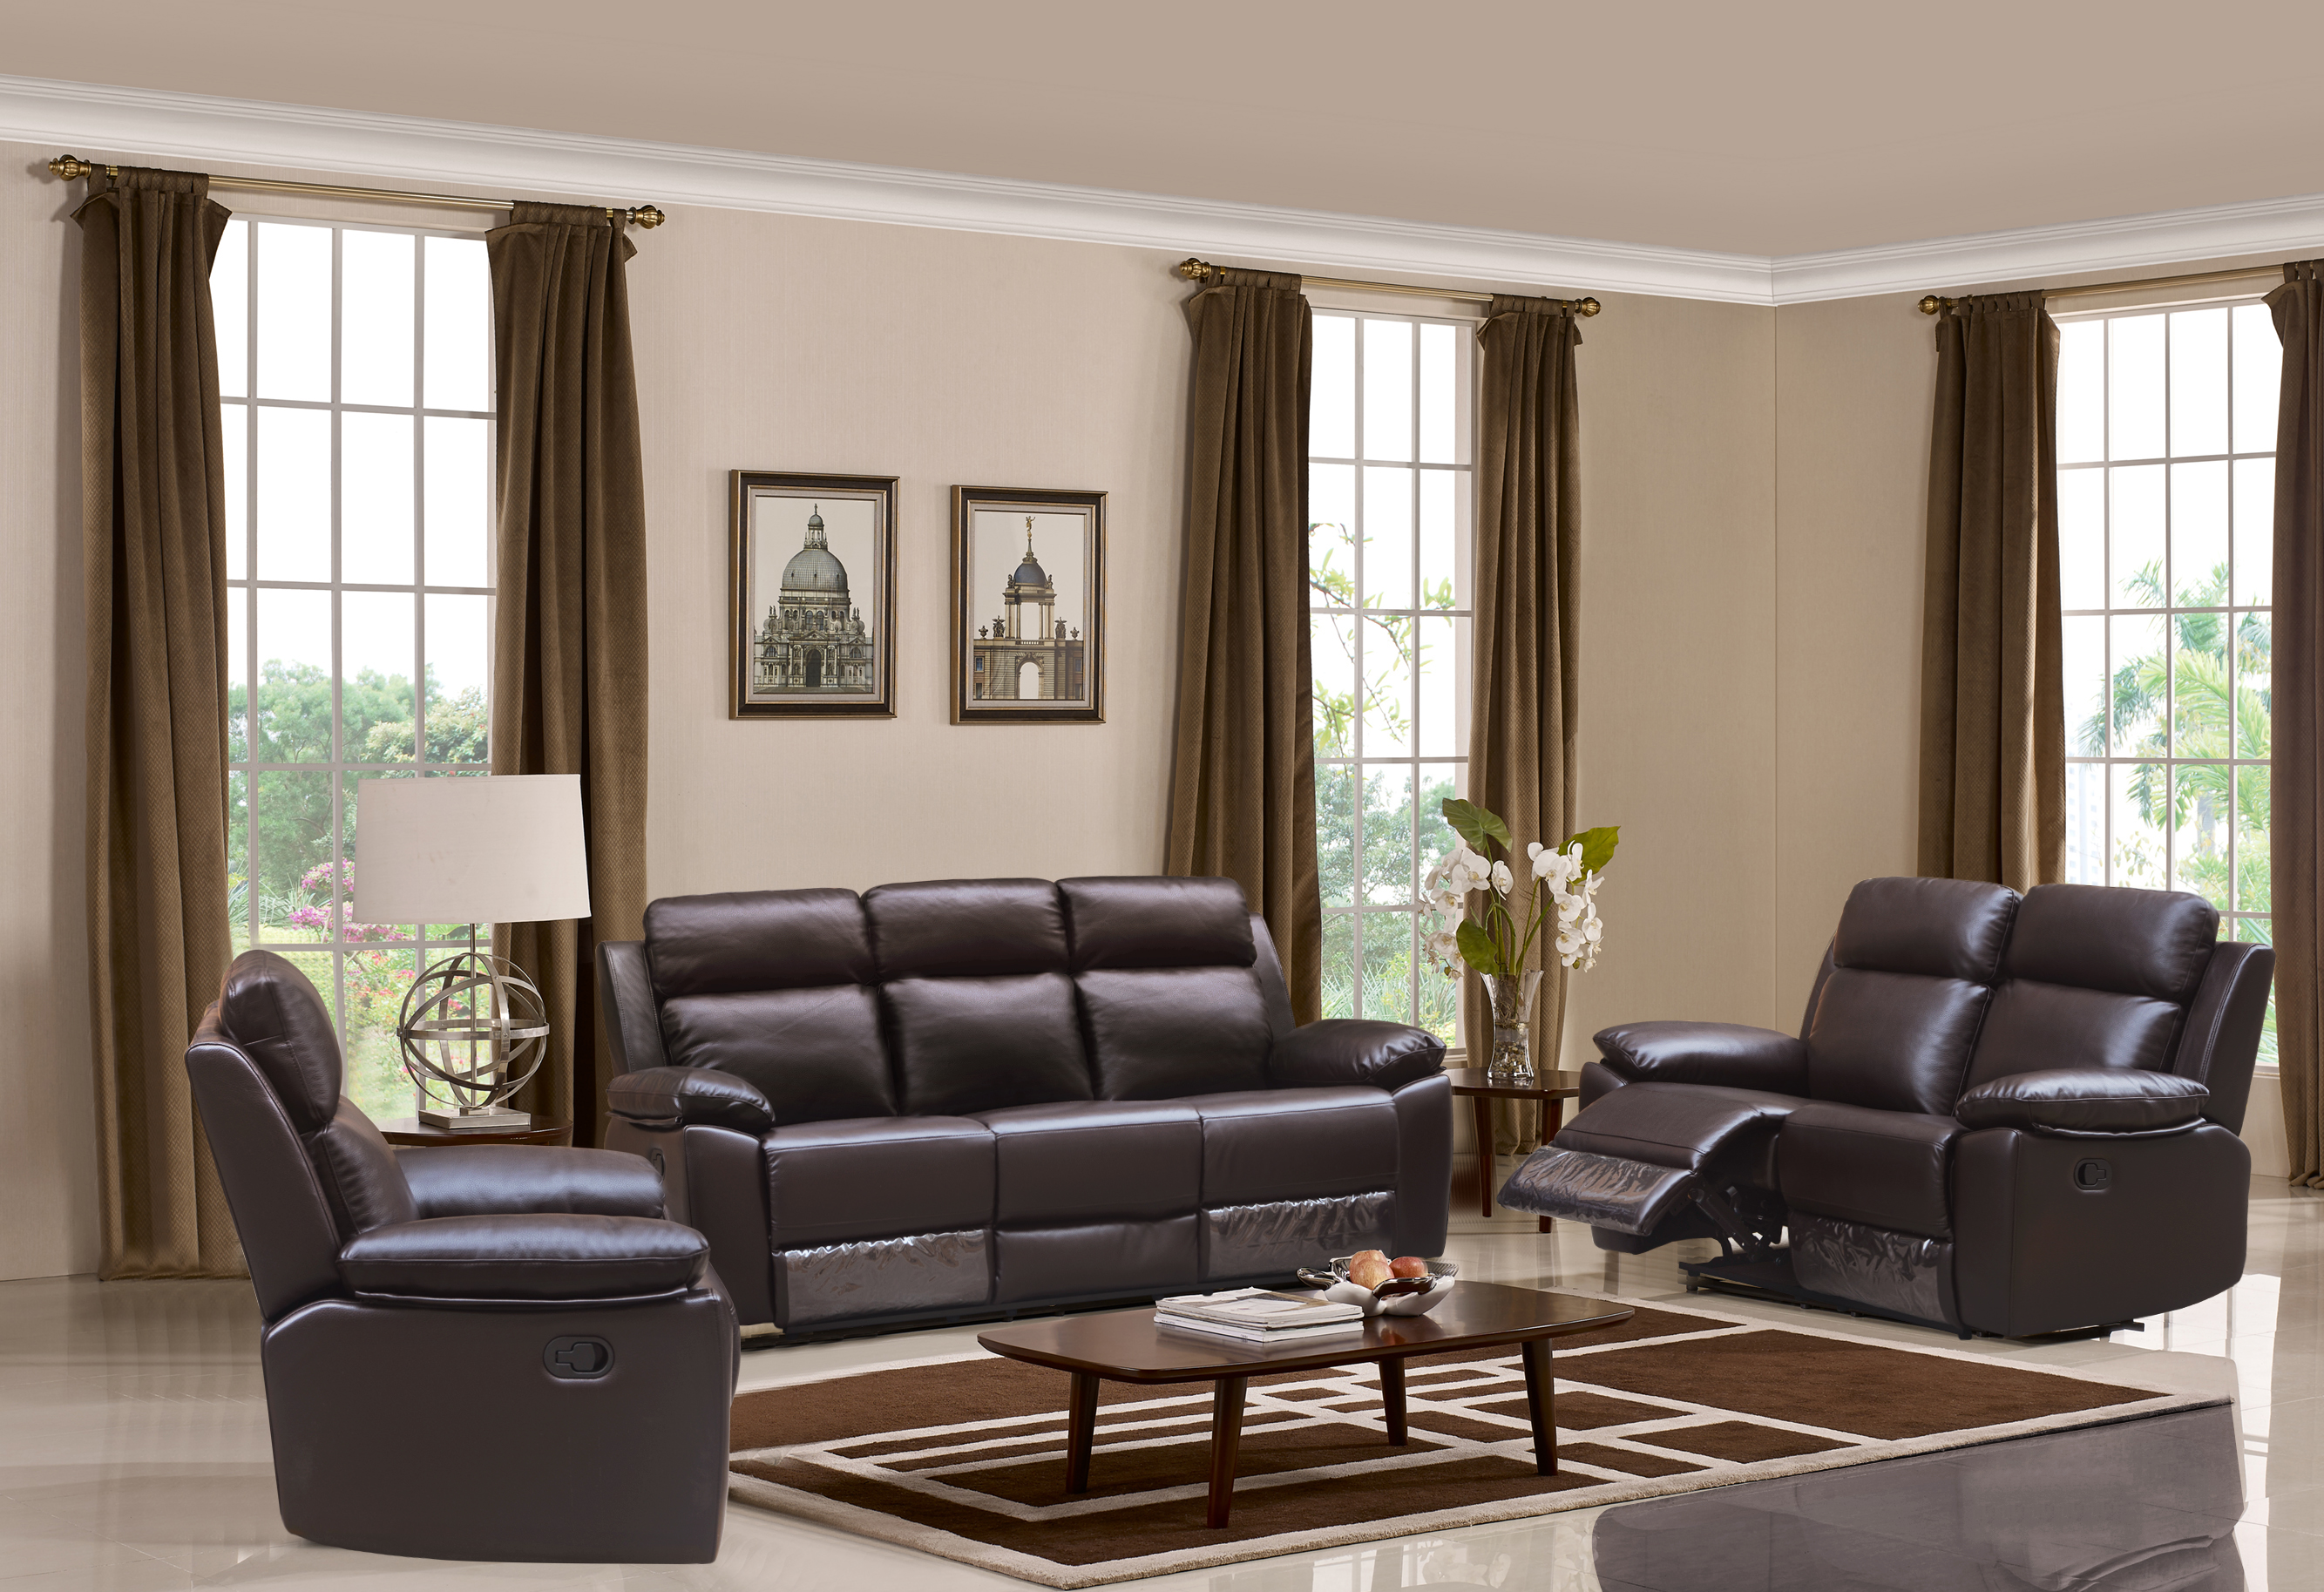 Husky Leo Recliner 3 Pc Sofa Set